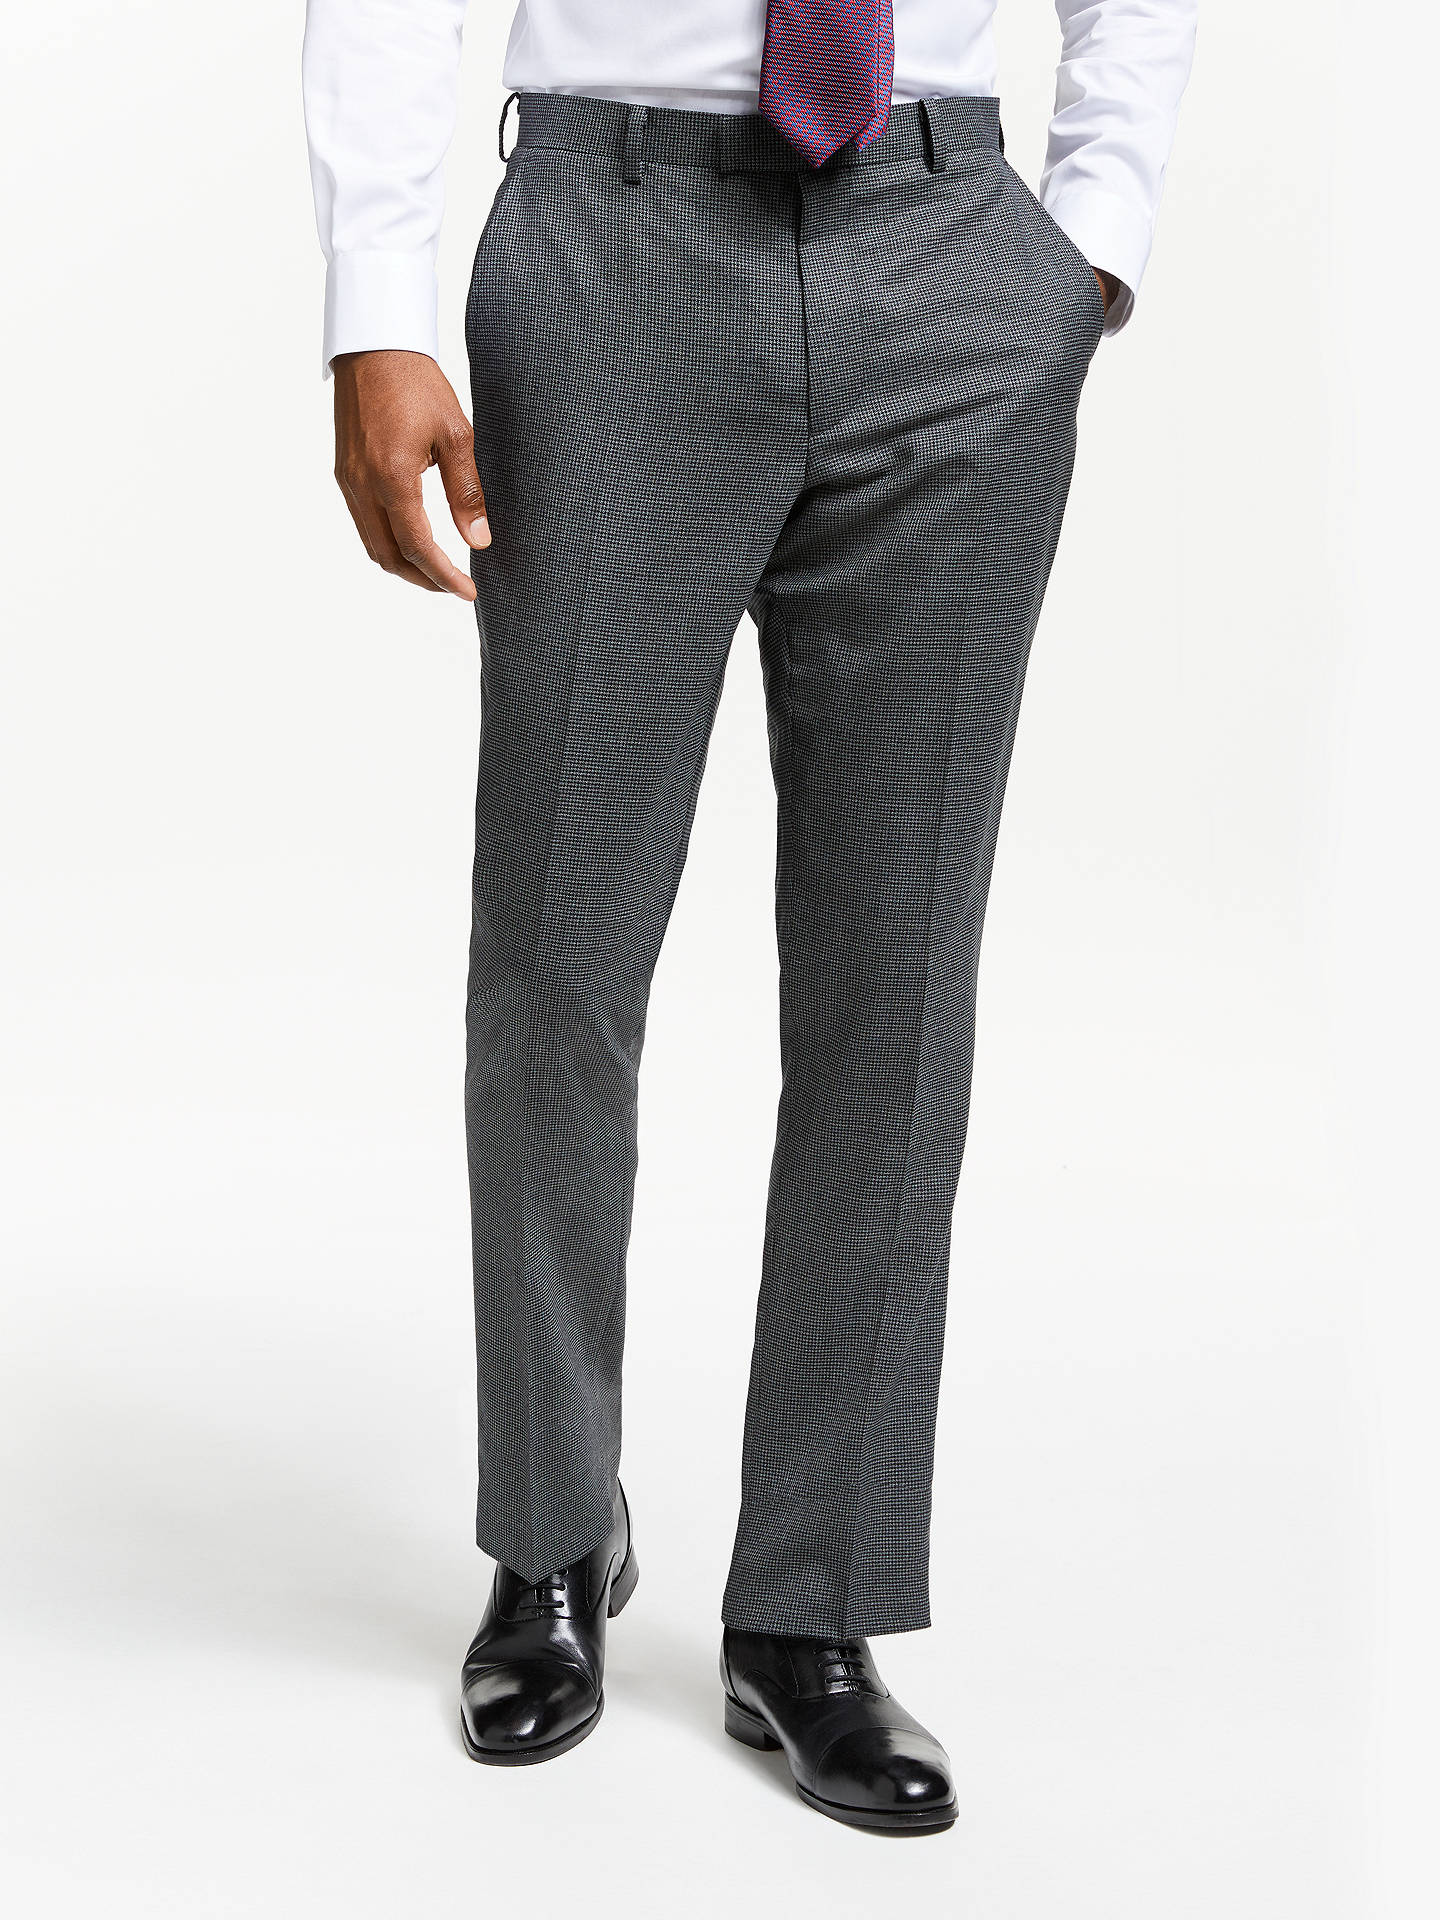 86ec8bd901e0 Buy John Lewis   Partners Wool Puppytooth Slim Fit Suit Trousers